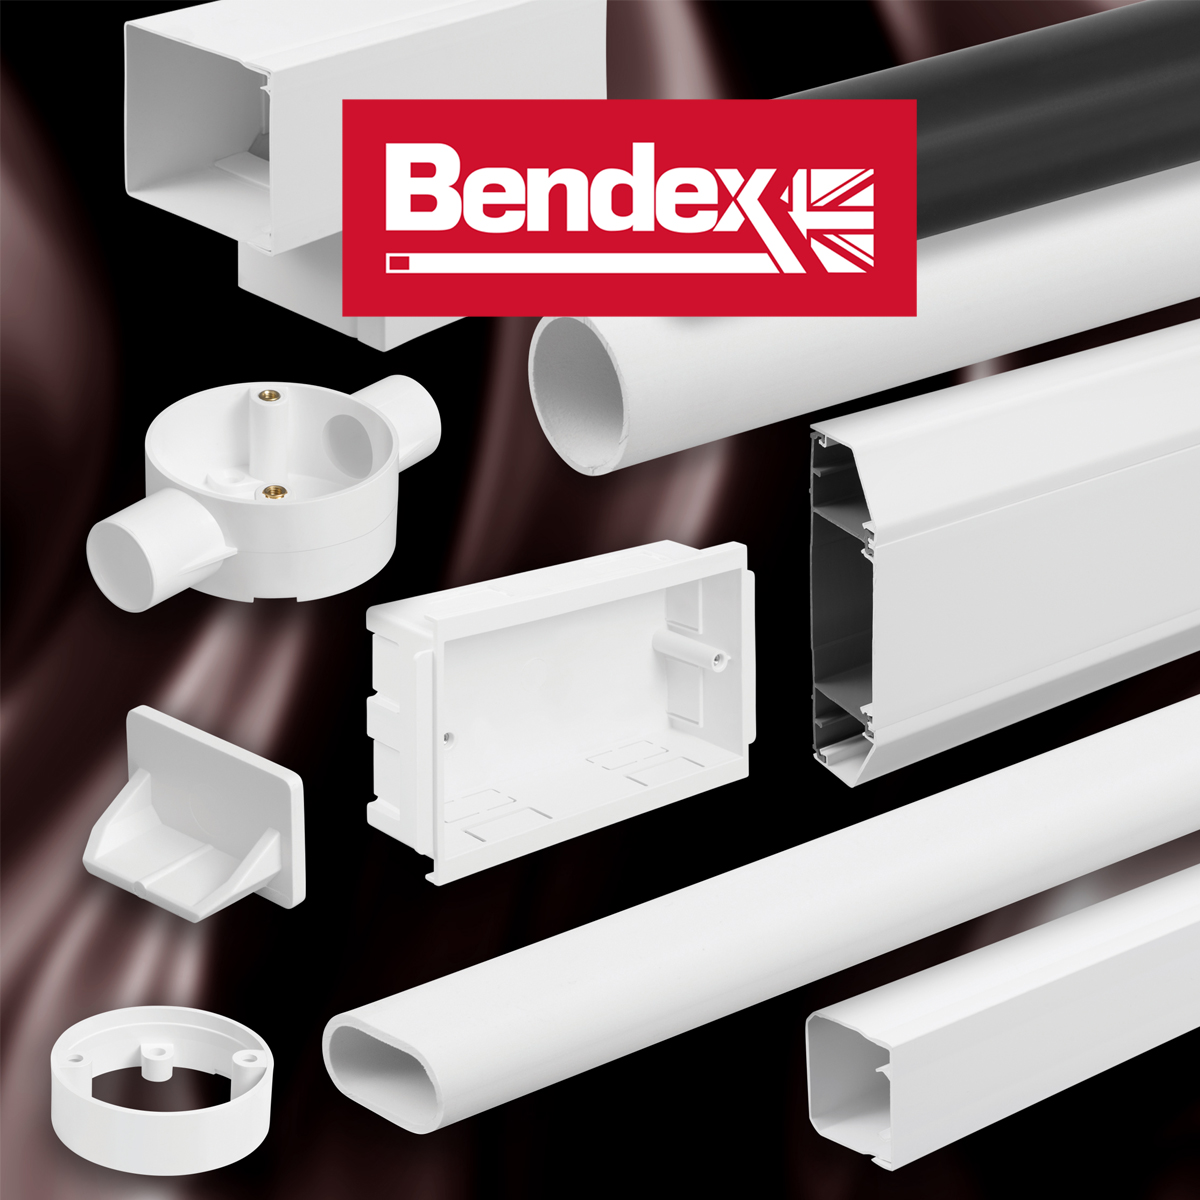 Bendex Cable Management Range